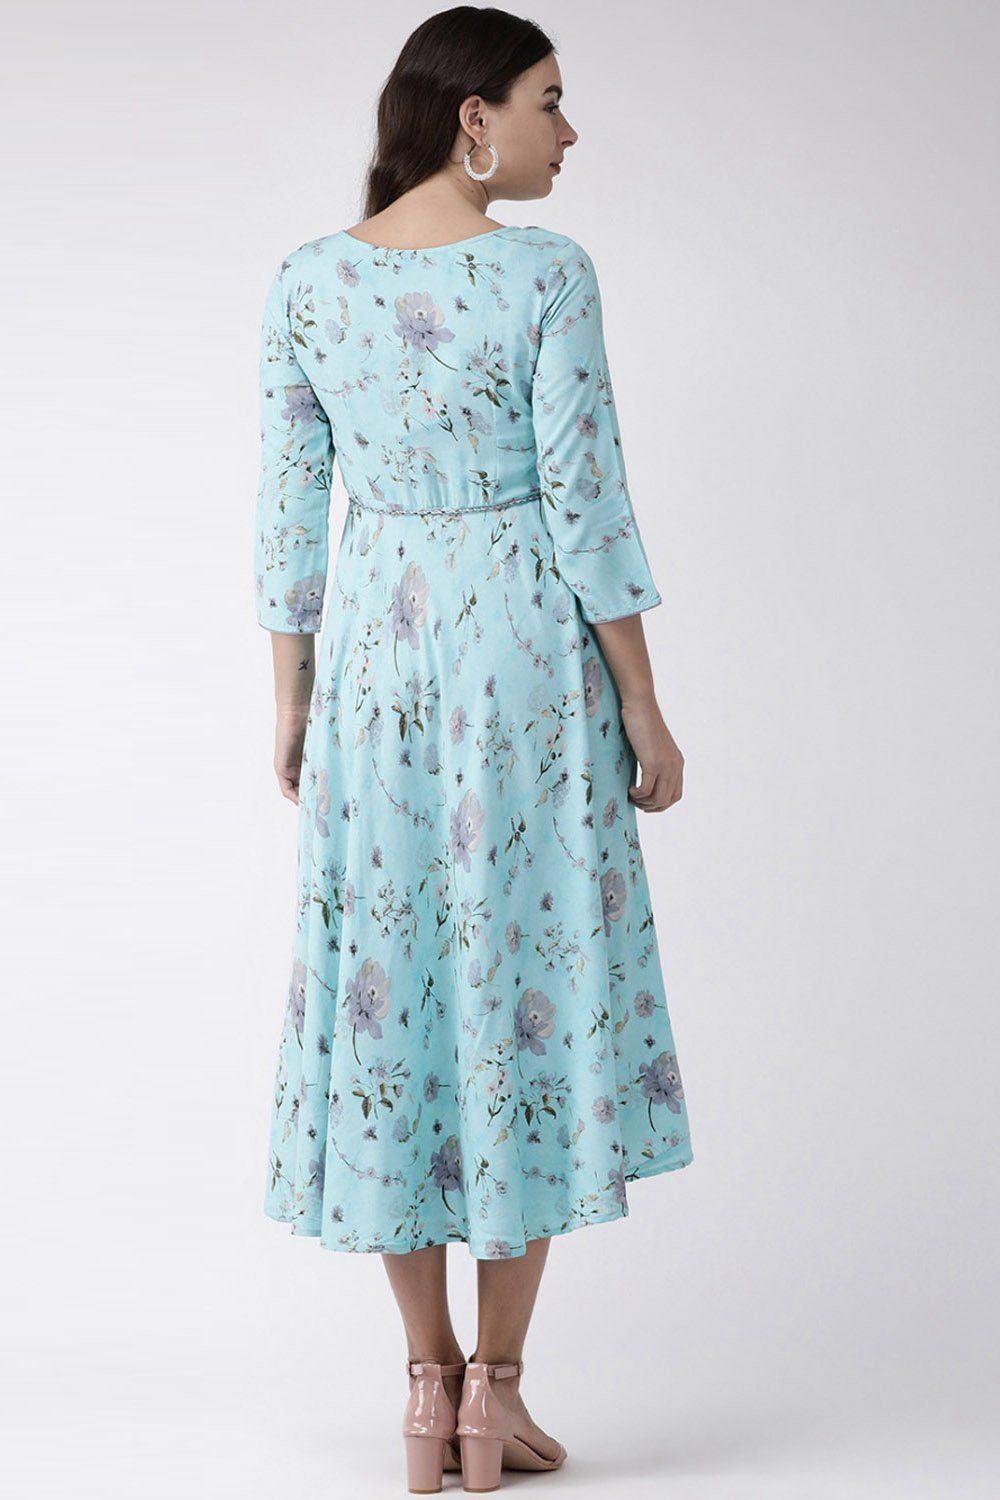 Viscose Printed Maxi Dress In Turquoise Printed Maxi Dress Maxi Dress Dresses [ 1500 x 1000 Pixel ]